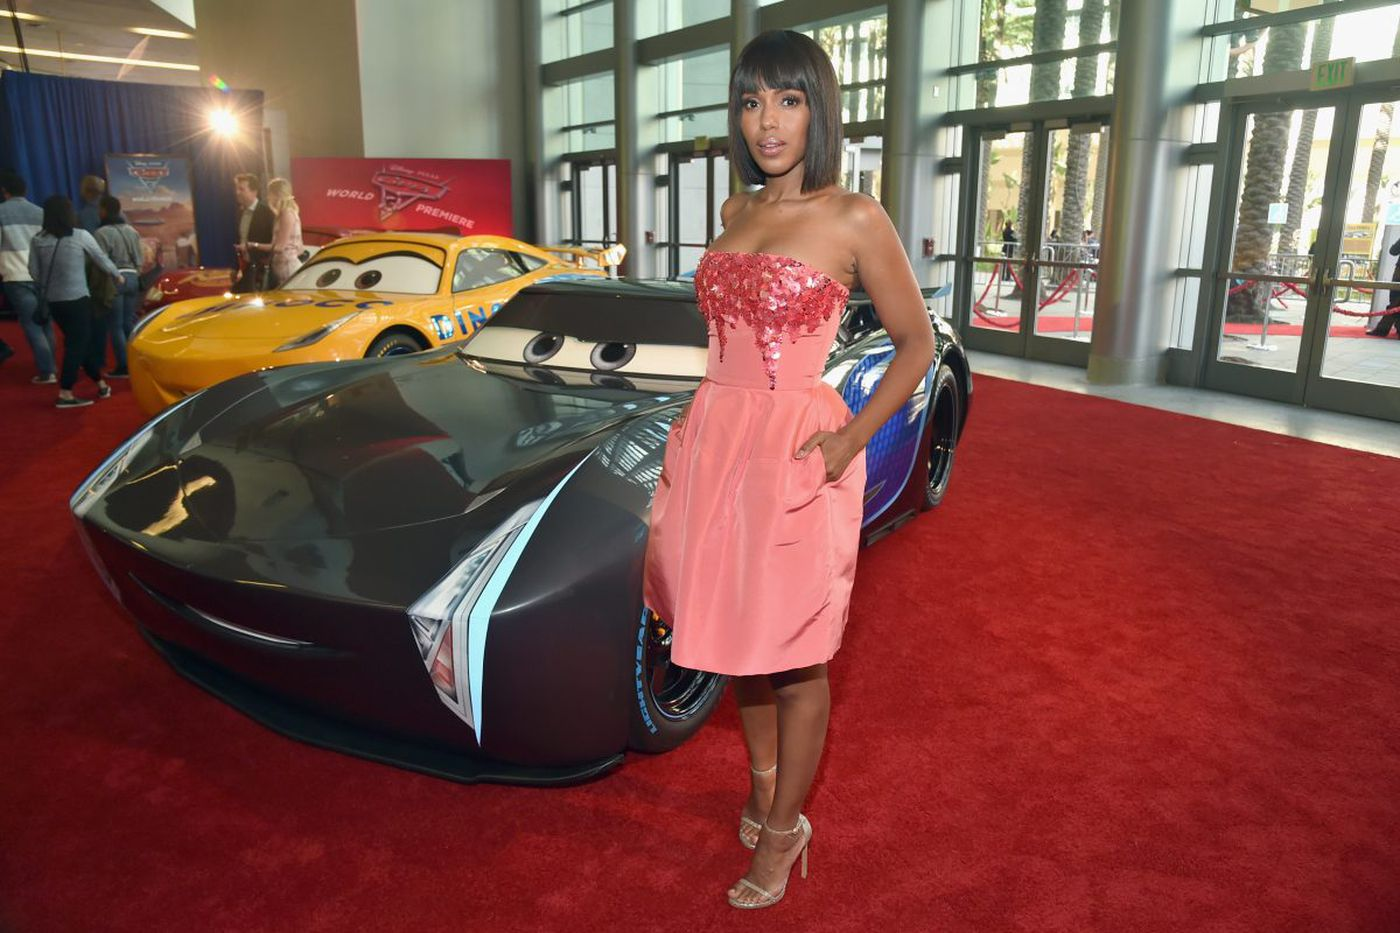 With career at full speed, Kerry Washington takes on 'Cars 3'